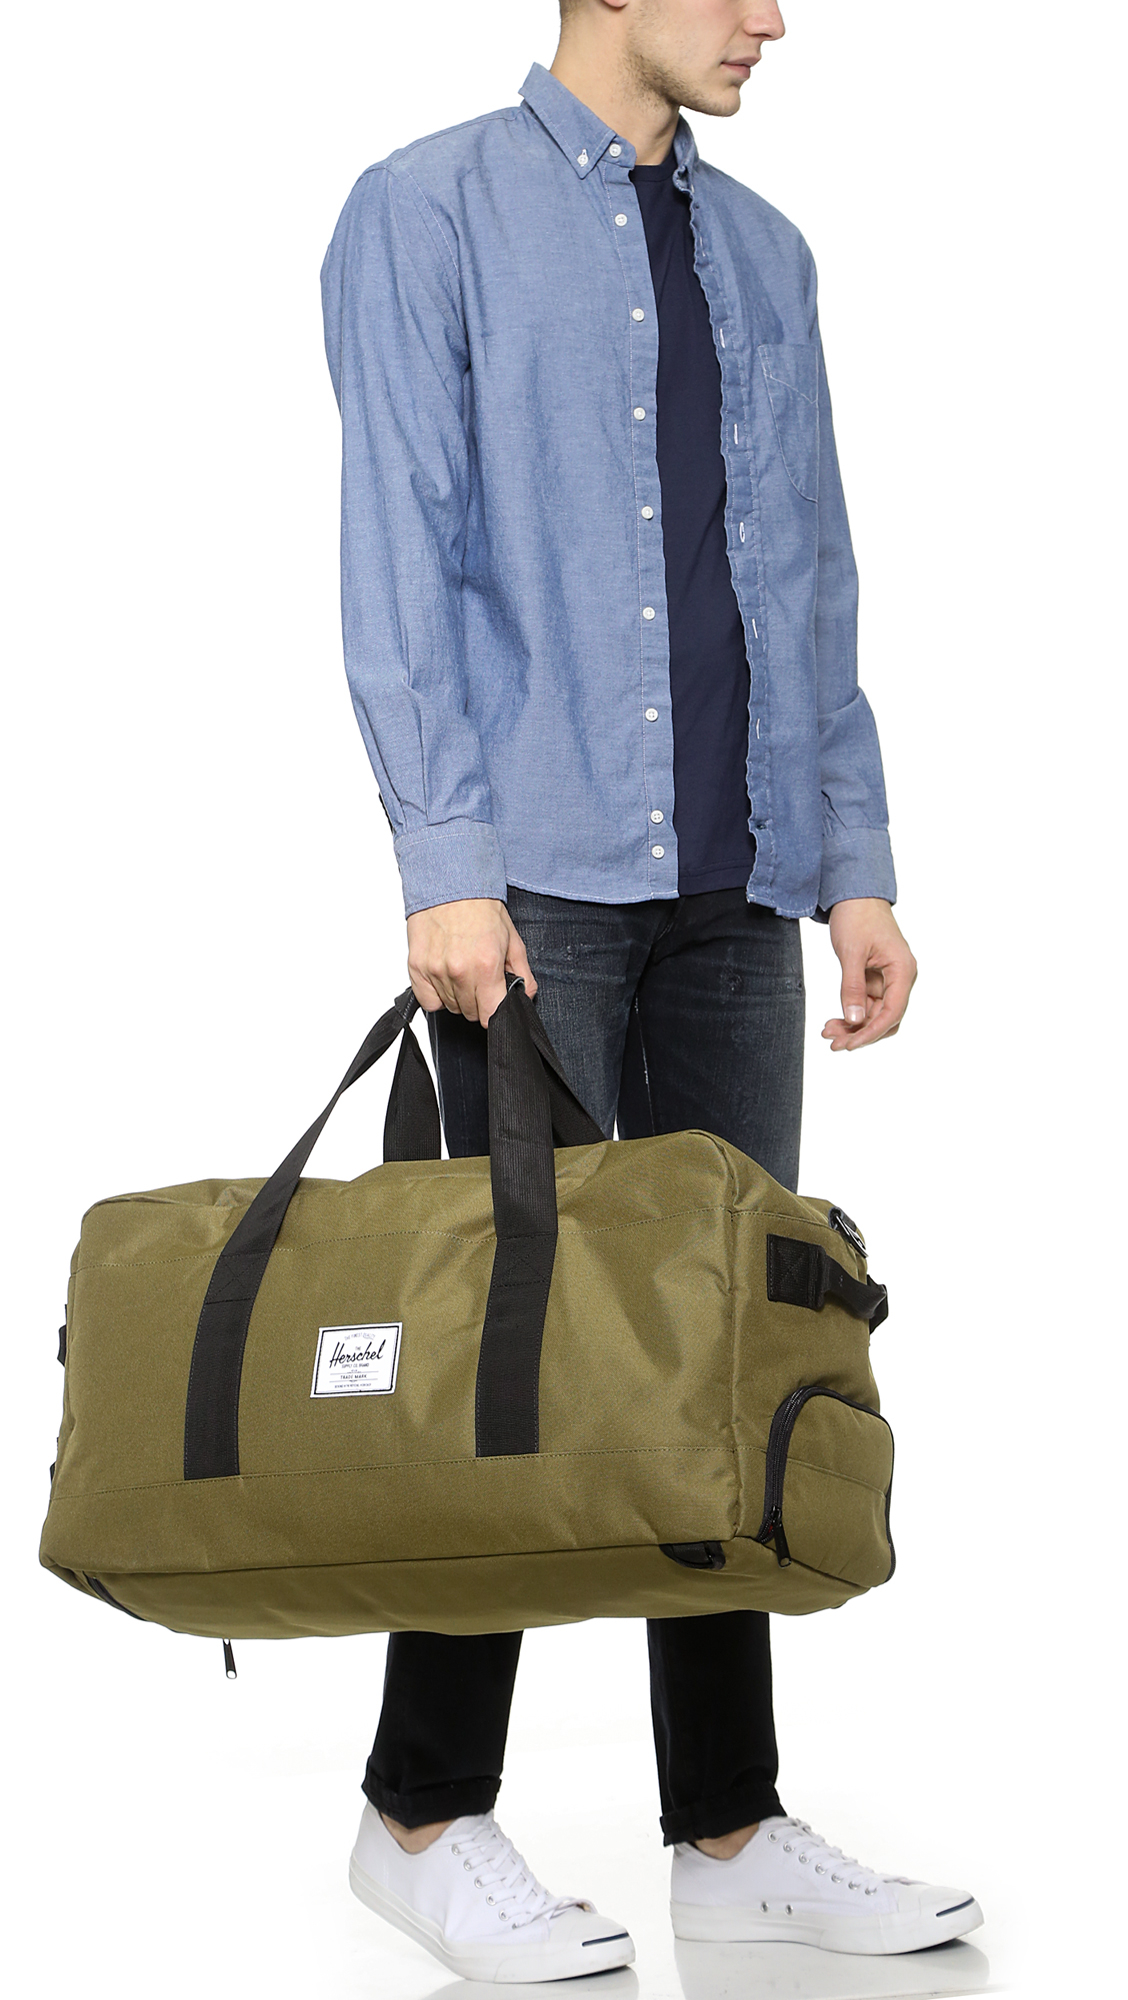 Herschel Supply Co. Outfitter Duffel in Green for Men - Lyst 4ab9c644e7